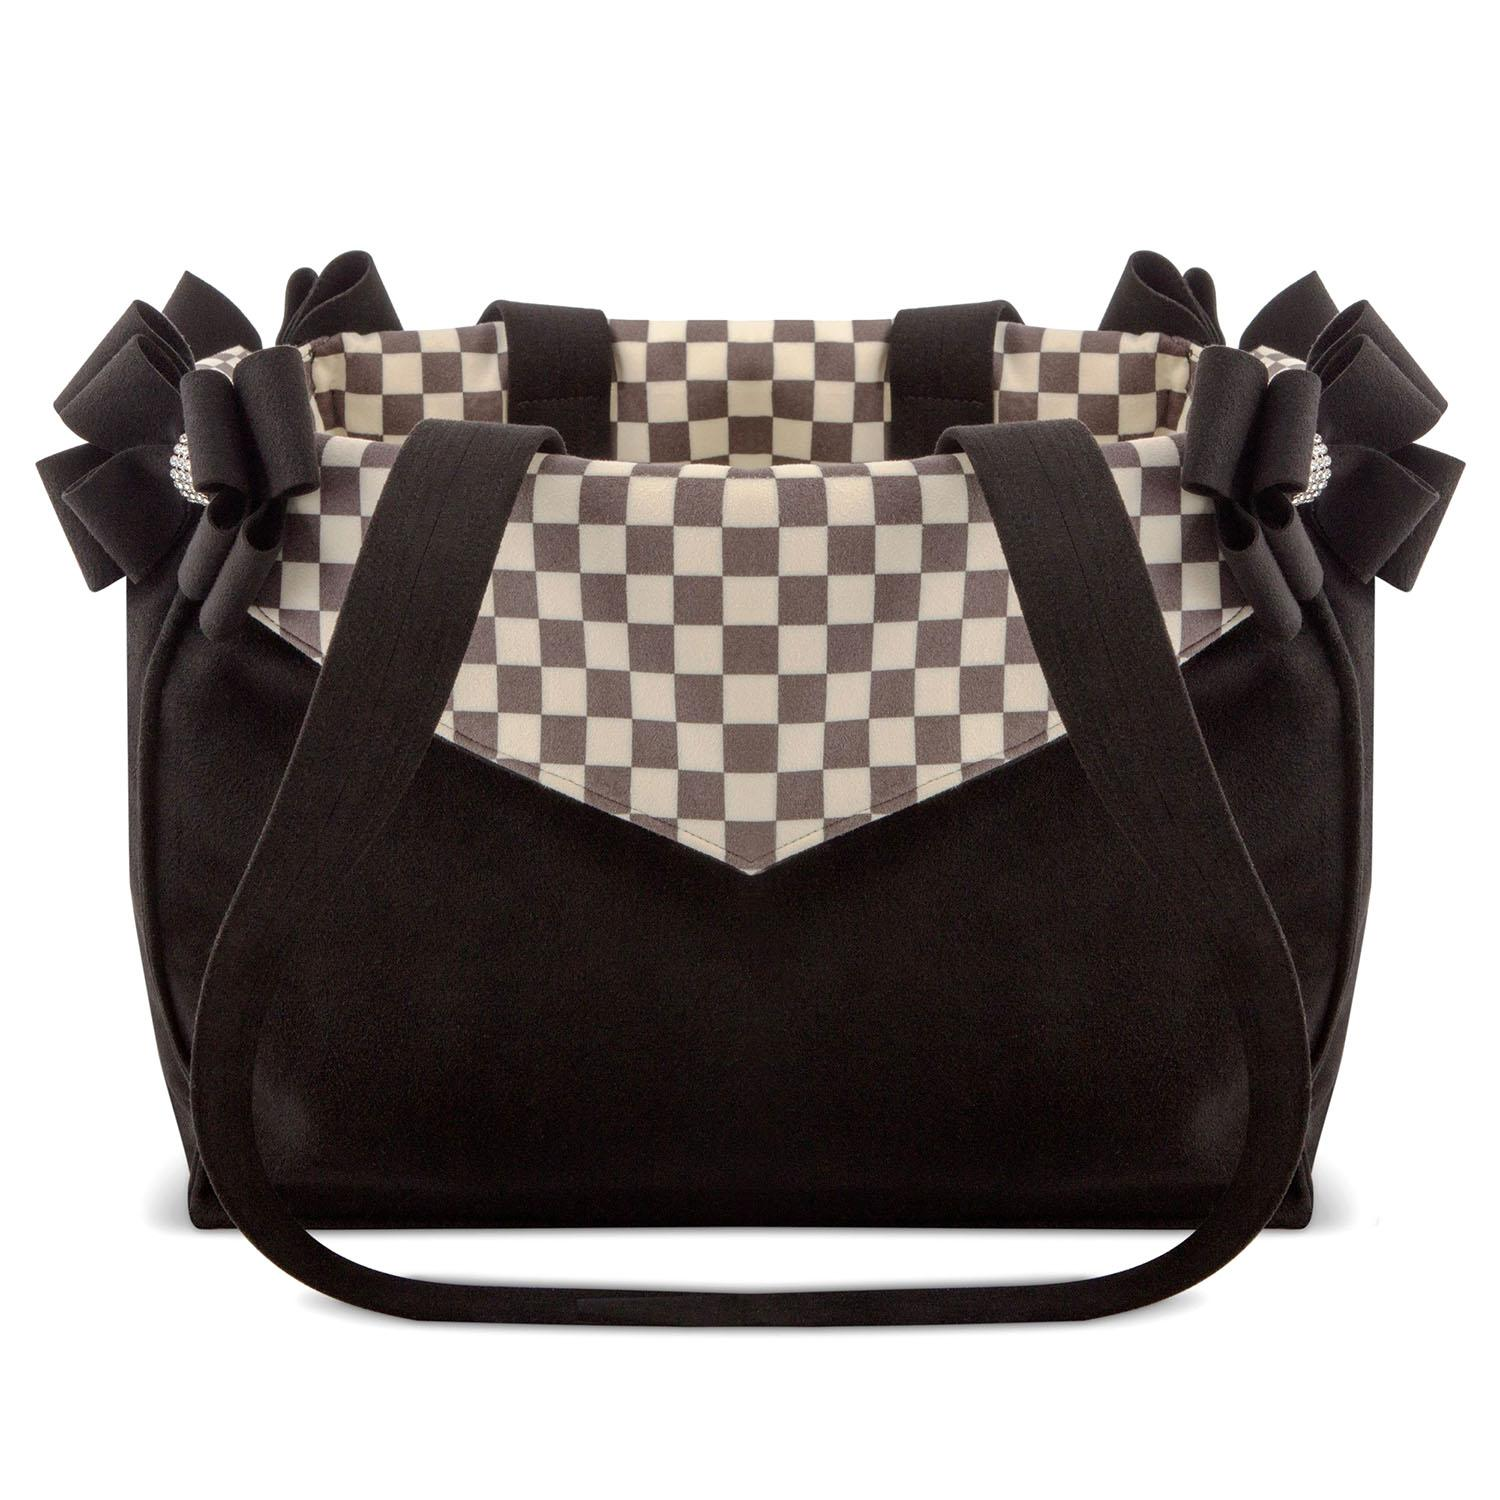 Windsor Check Double Nouveau Bow Luxury Dog Carrier by Susan Lanci - Chocolate